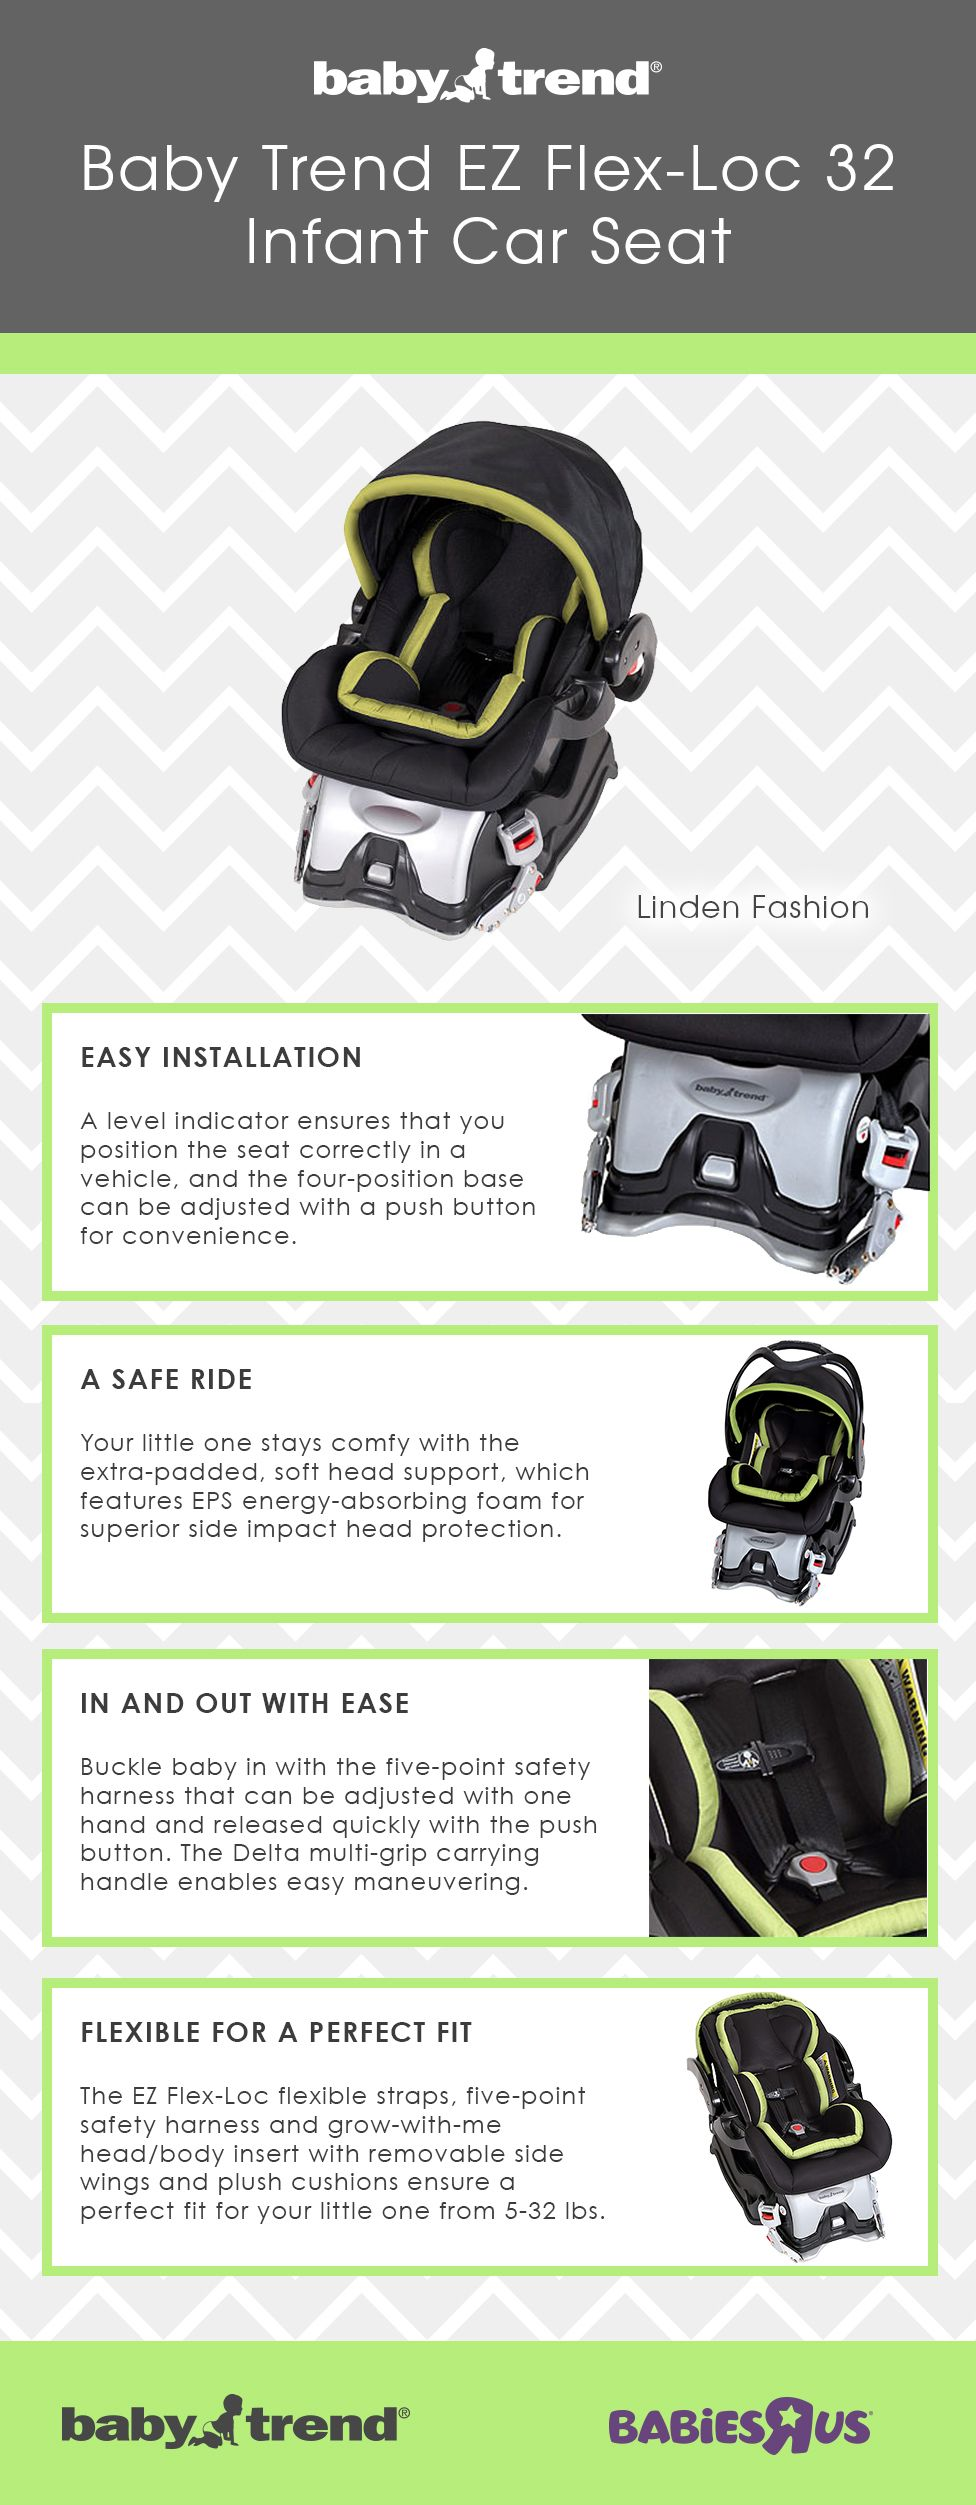 The Baby Trend Ez Flex Loc 32 Infant Car Seat Has An Easy